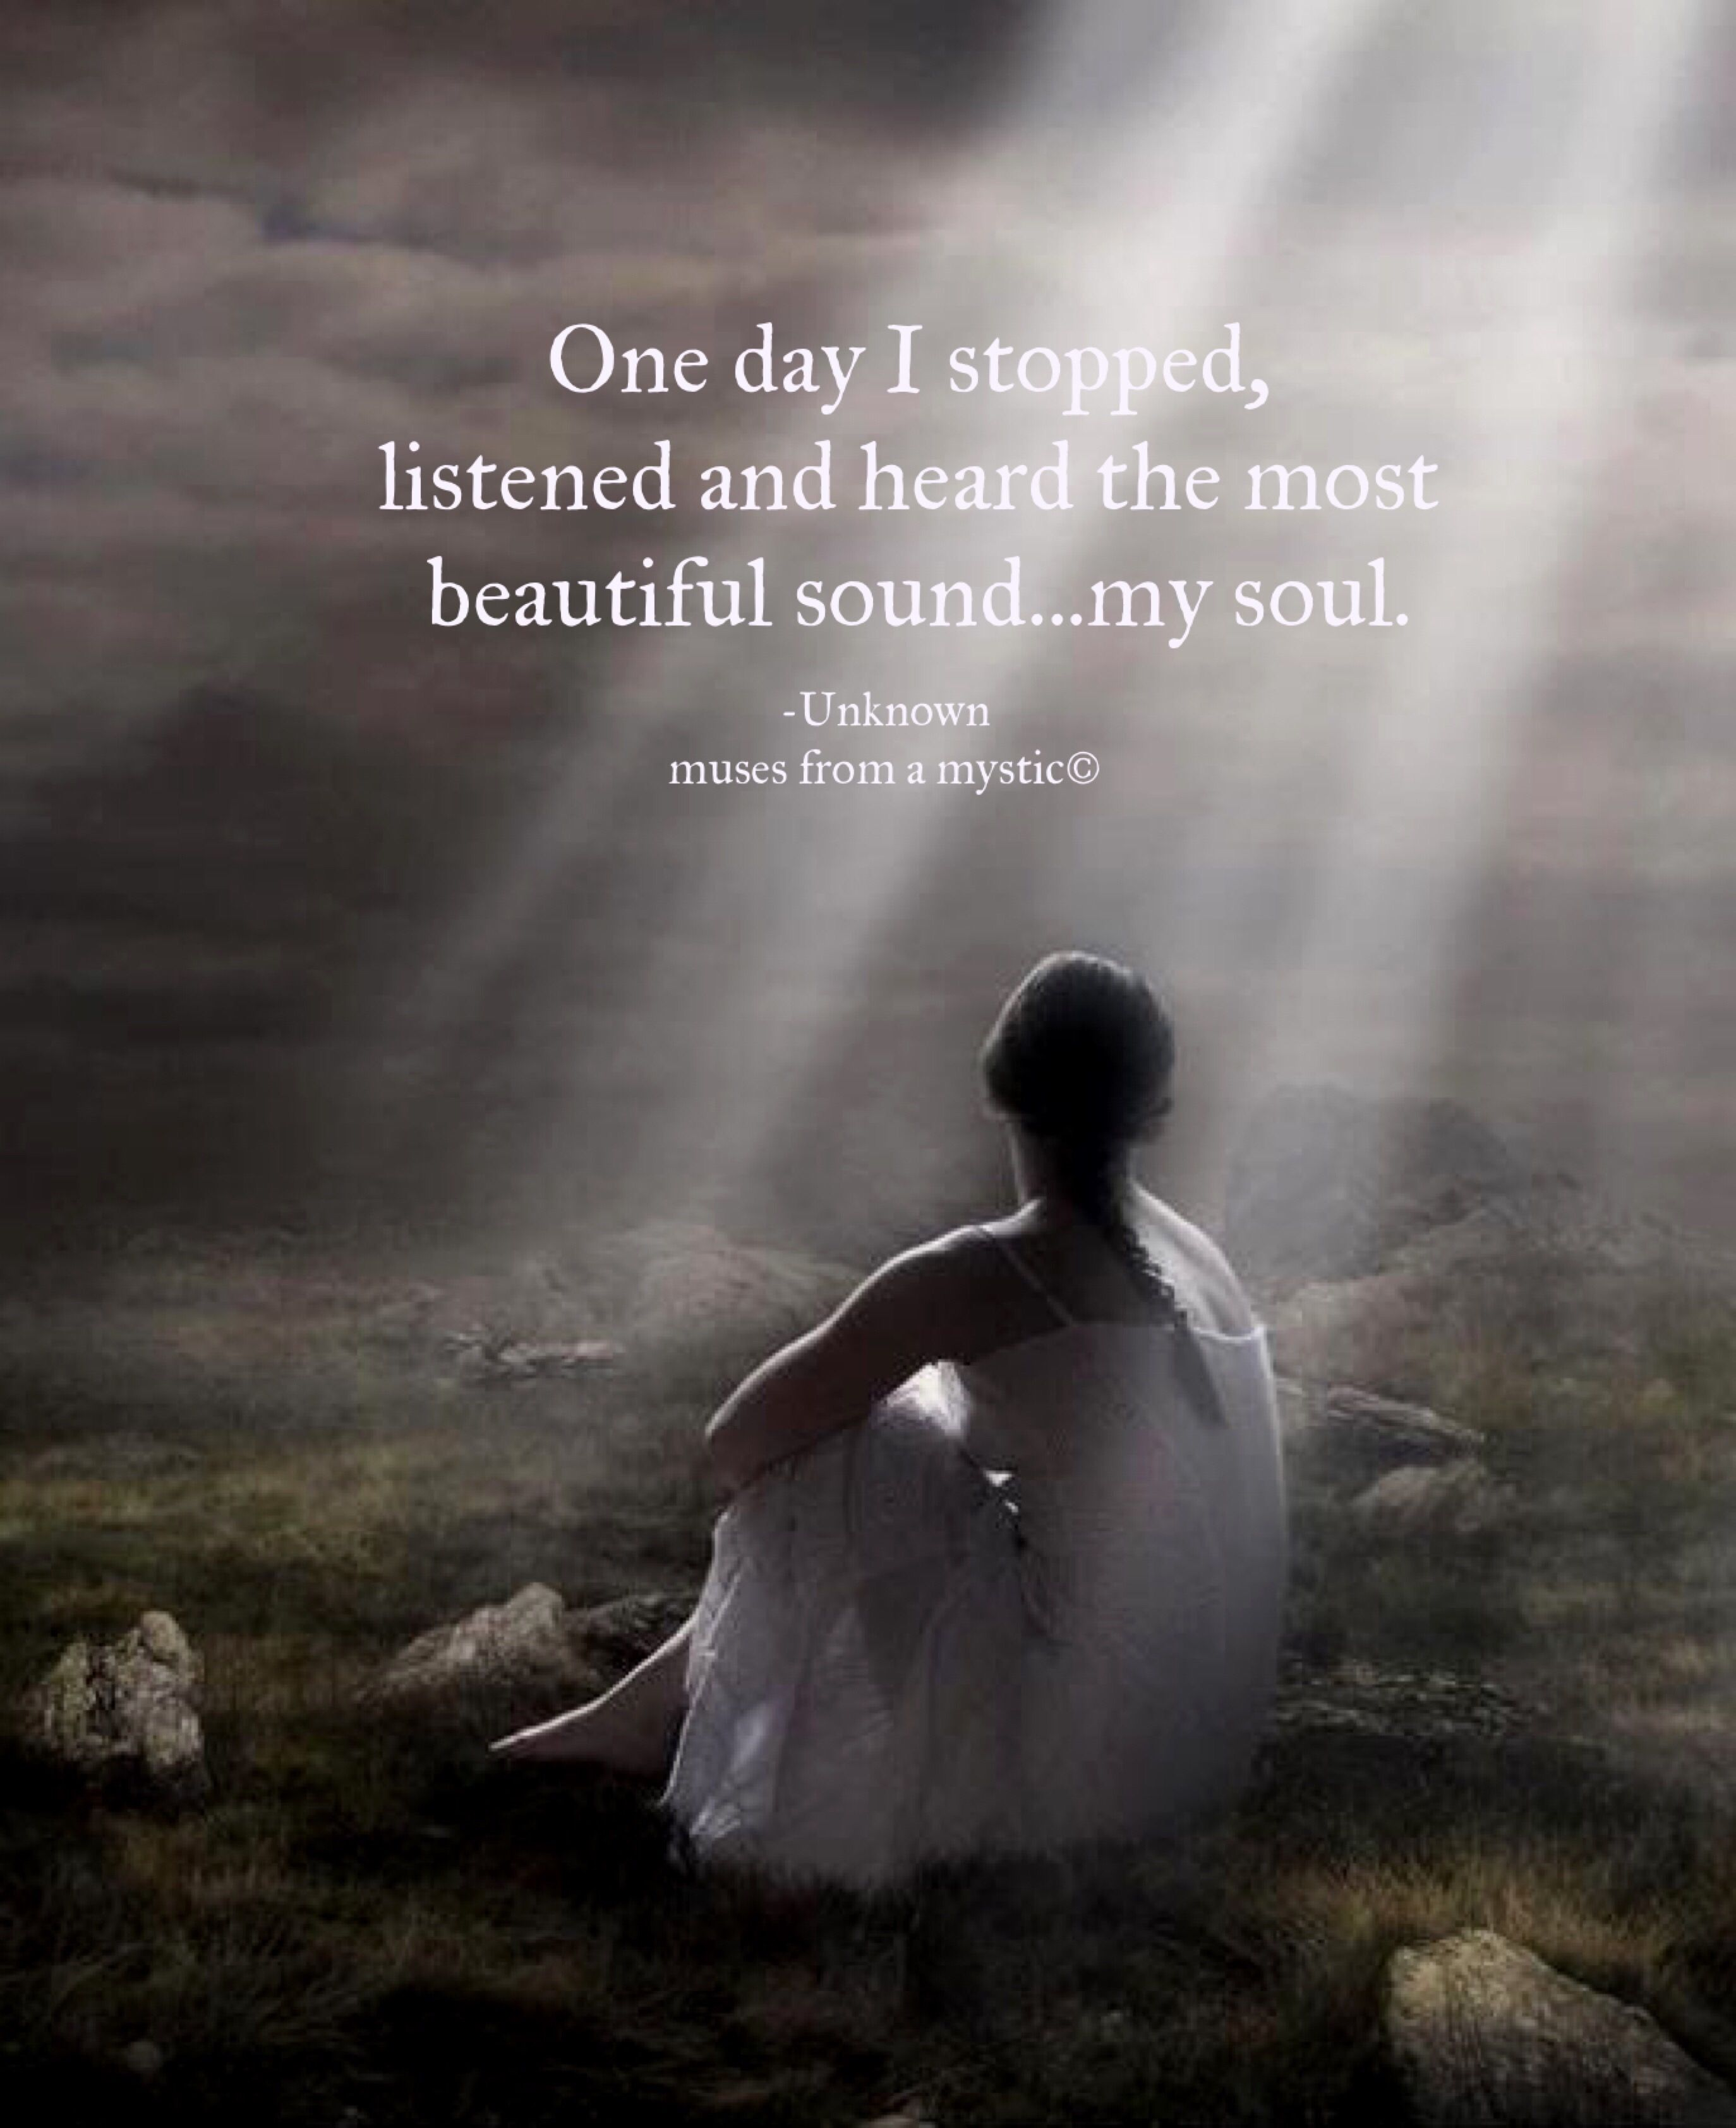 One day I stopped listened and heard the most beautiful ...